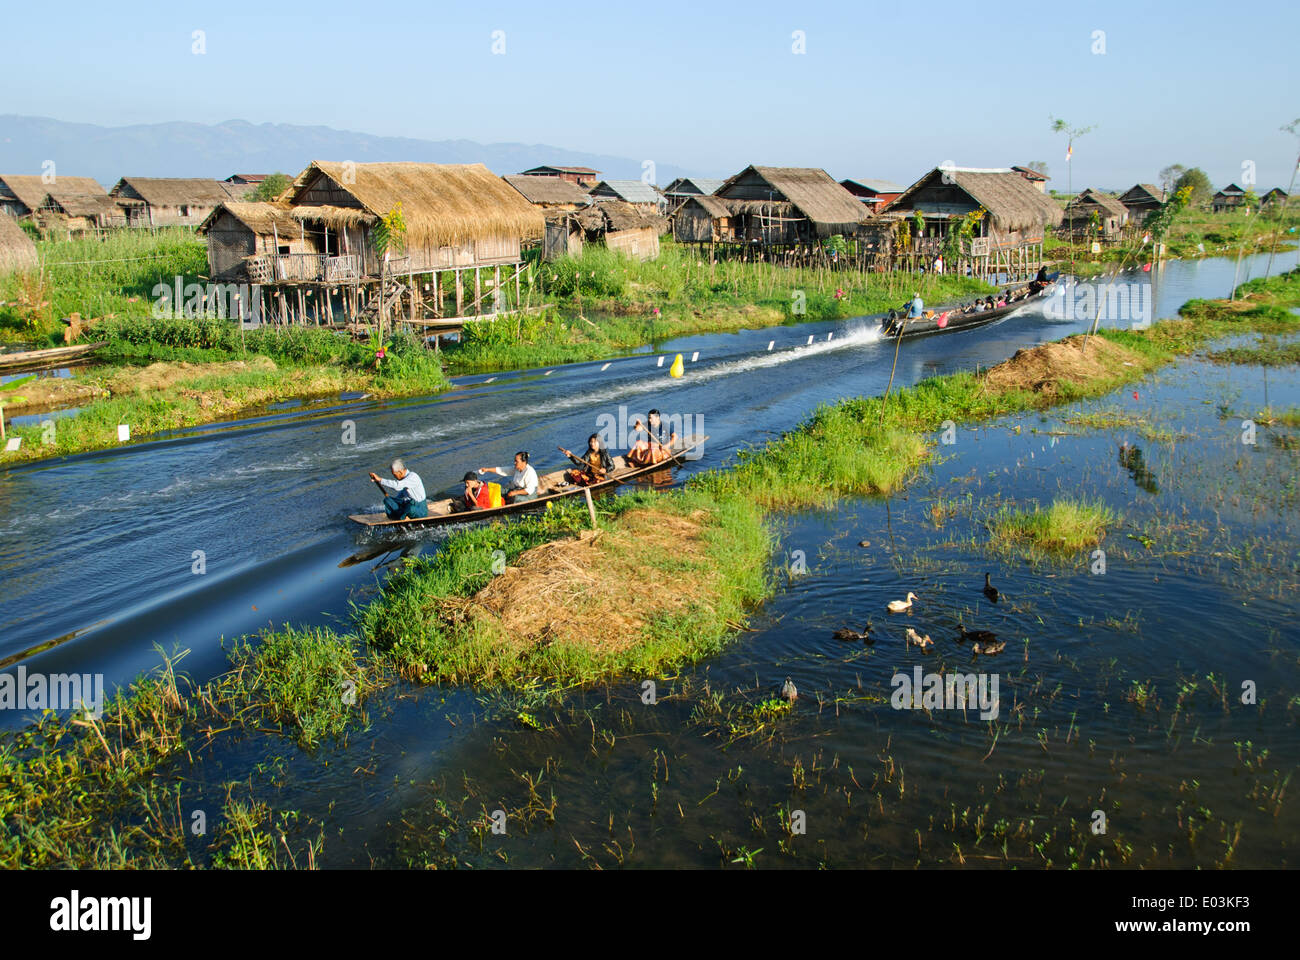 A water village over the Inle Lake. - Stock Image